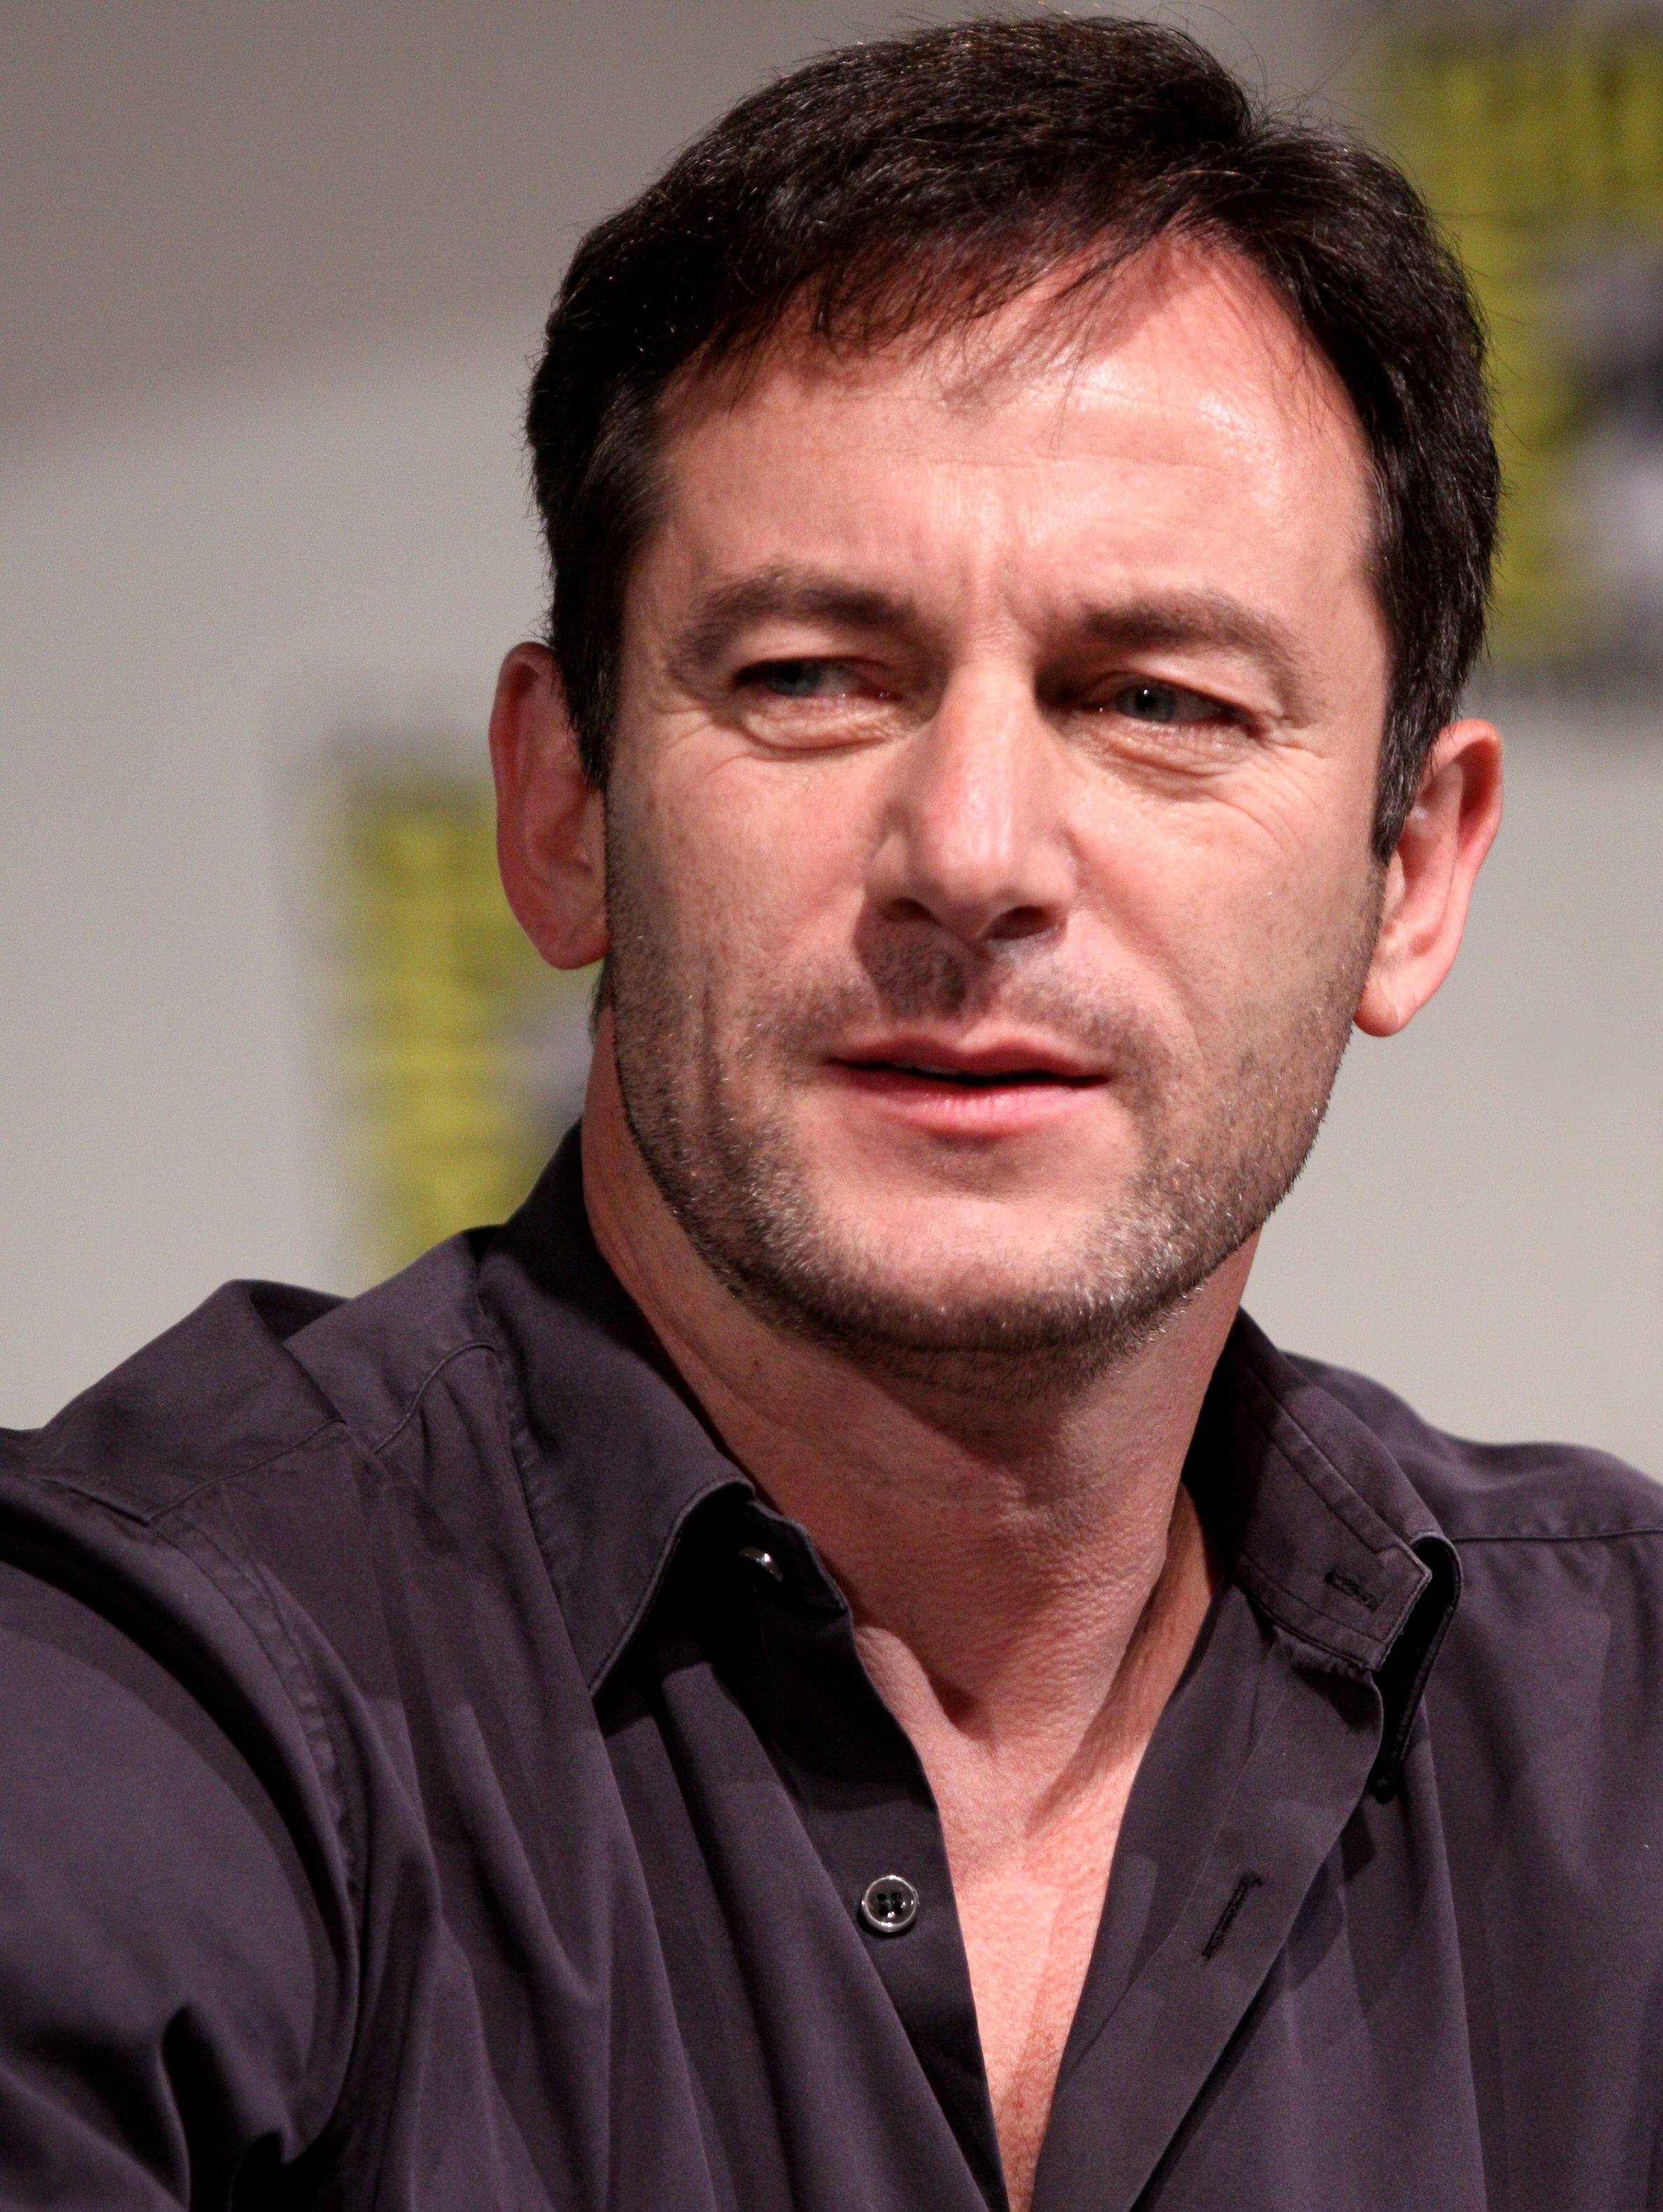 Jason Isaacs, who I was watching on TV at the time